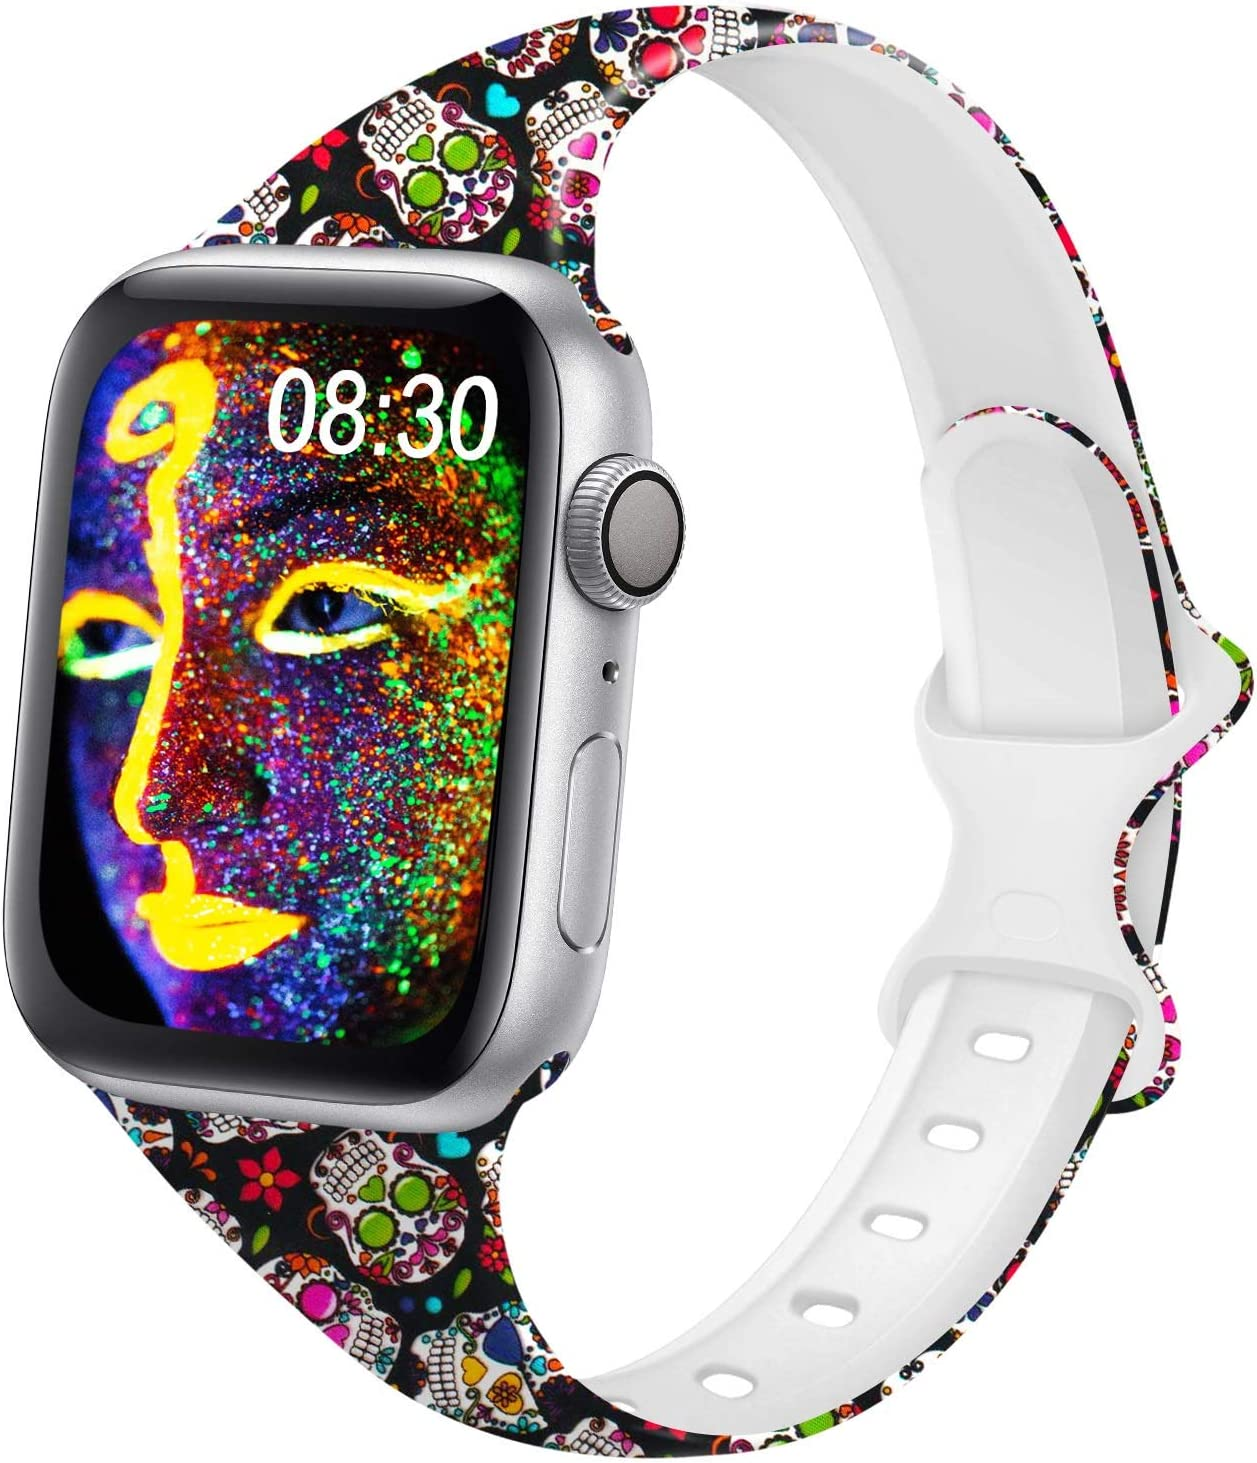 DYKEISS Pattern Printed Slim Silicone Band Compatible for Apple Watch Band 38mm 42mm 40mm 44mm, Fadeless Floral Thin Narrow Replacement Strap for iWatch Series 5/4/3/2/1 (Colorful Skull, 42mm/44mm)